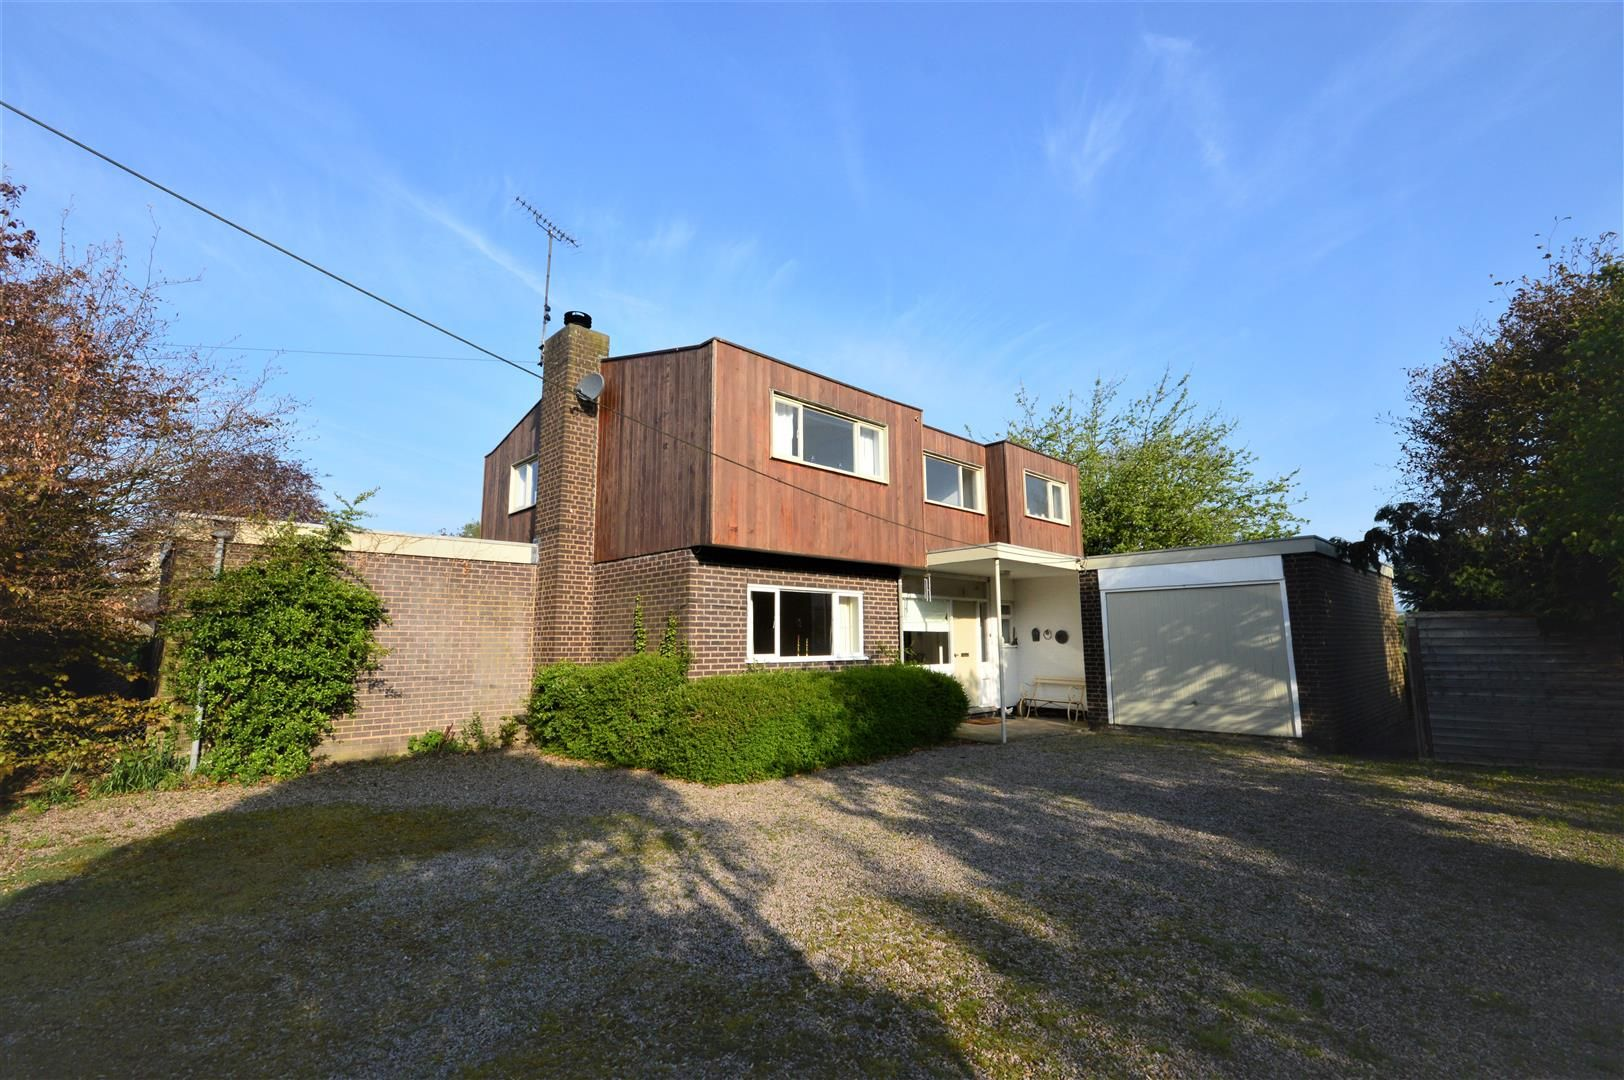 3 bed detached for sale in Eardisland  - Property Image 1